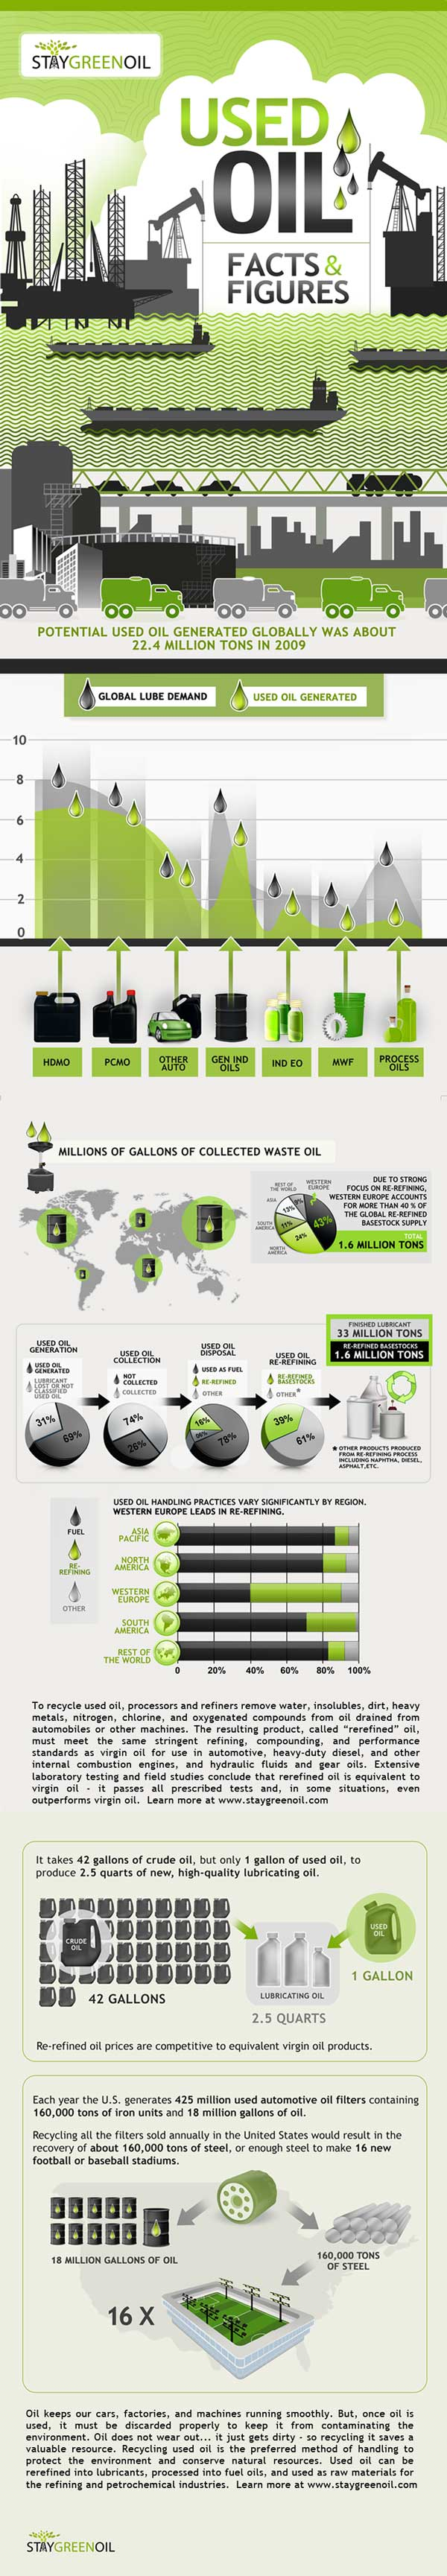 Facts About Used Oil